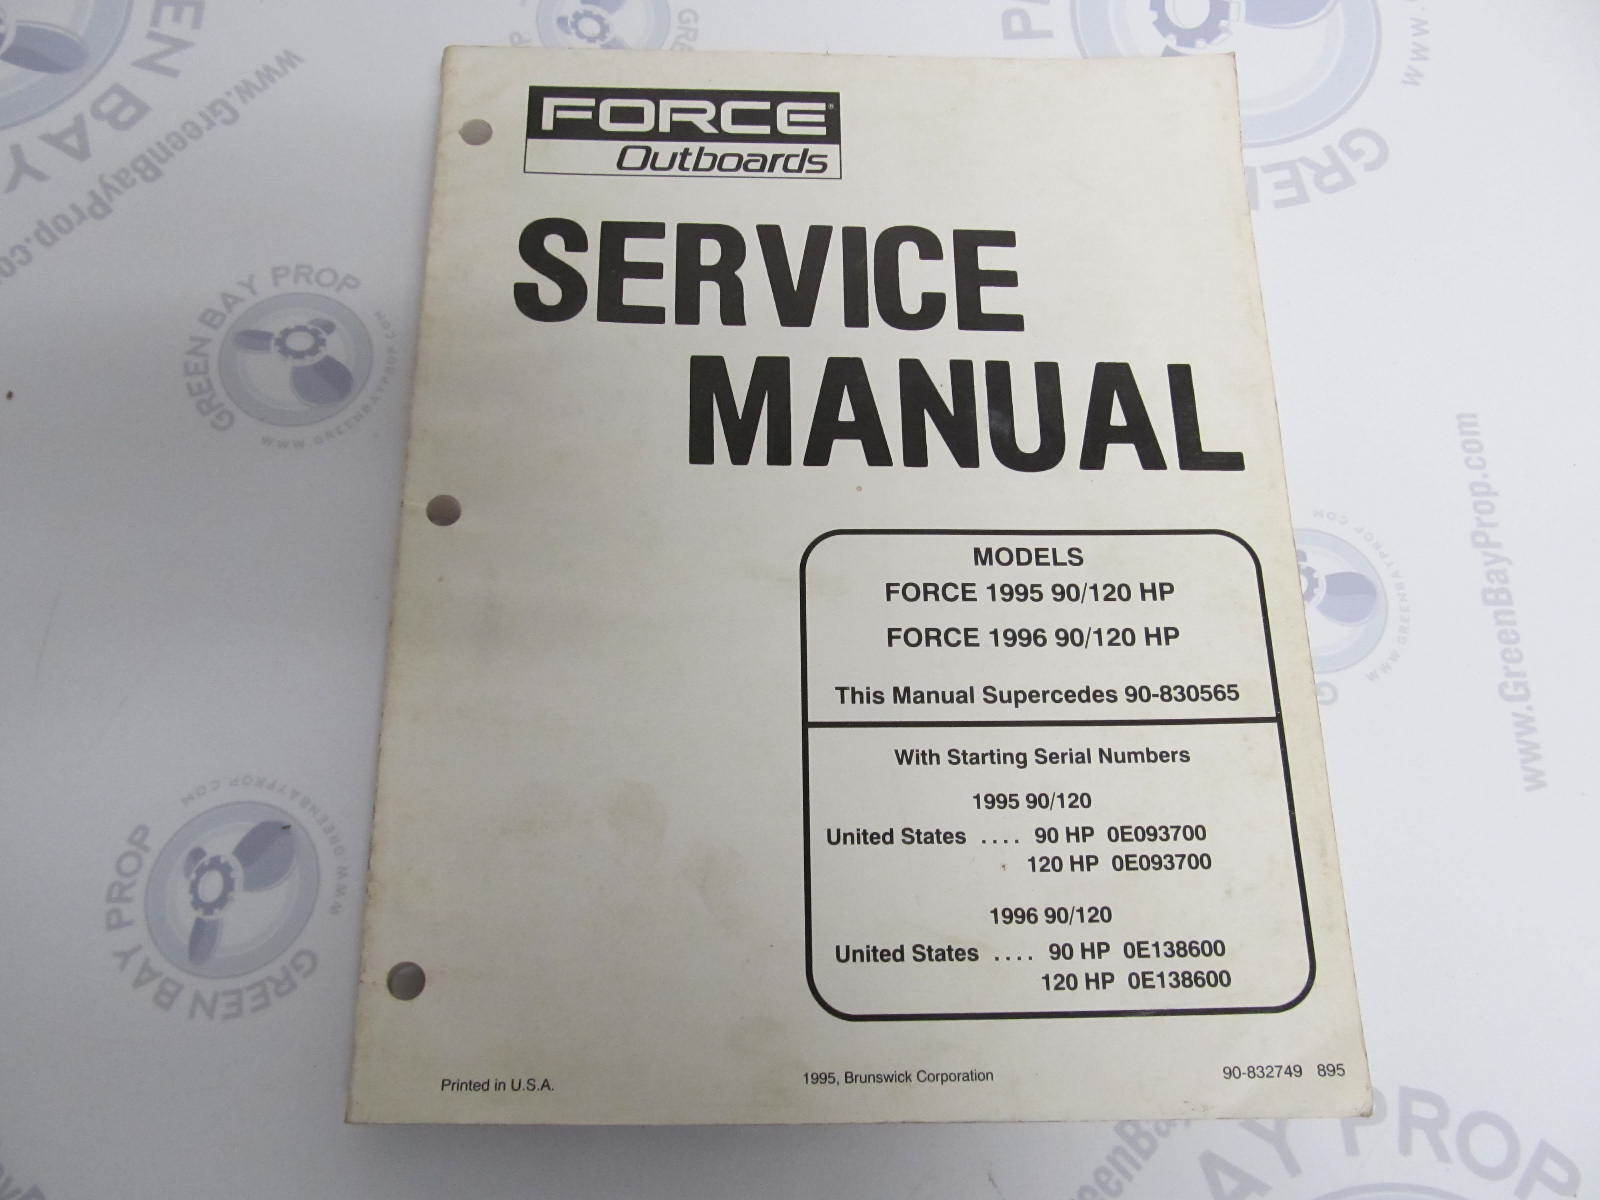 90 832749 mercury force outboard service manual 90 120 hp 1995 96 rh greenbayprop com 120 hp force outboard motor service manual 120 hp force outboard motor service manual